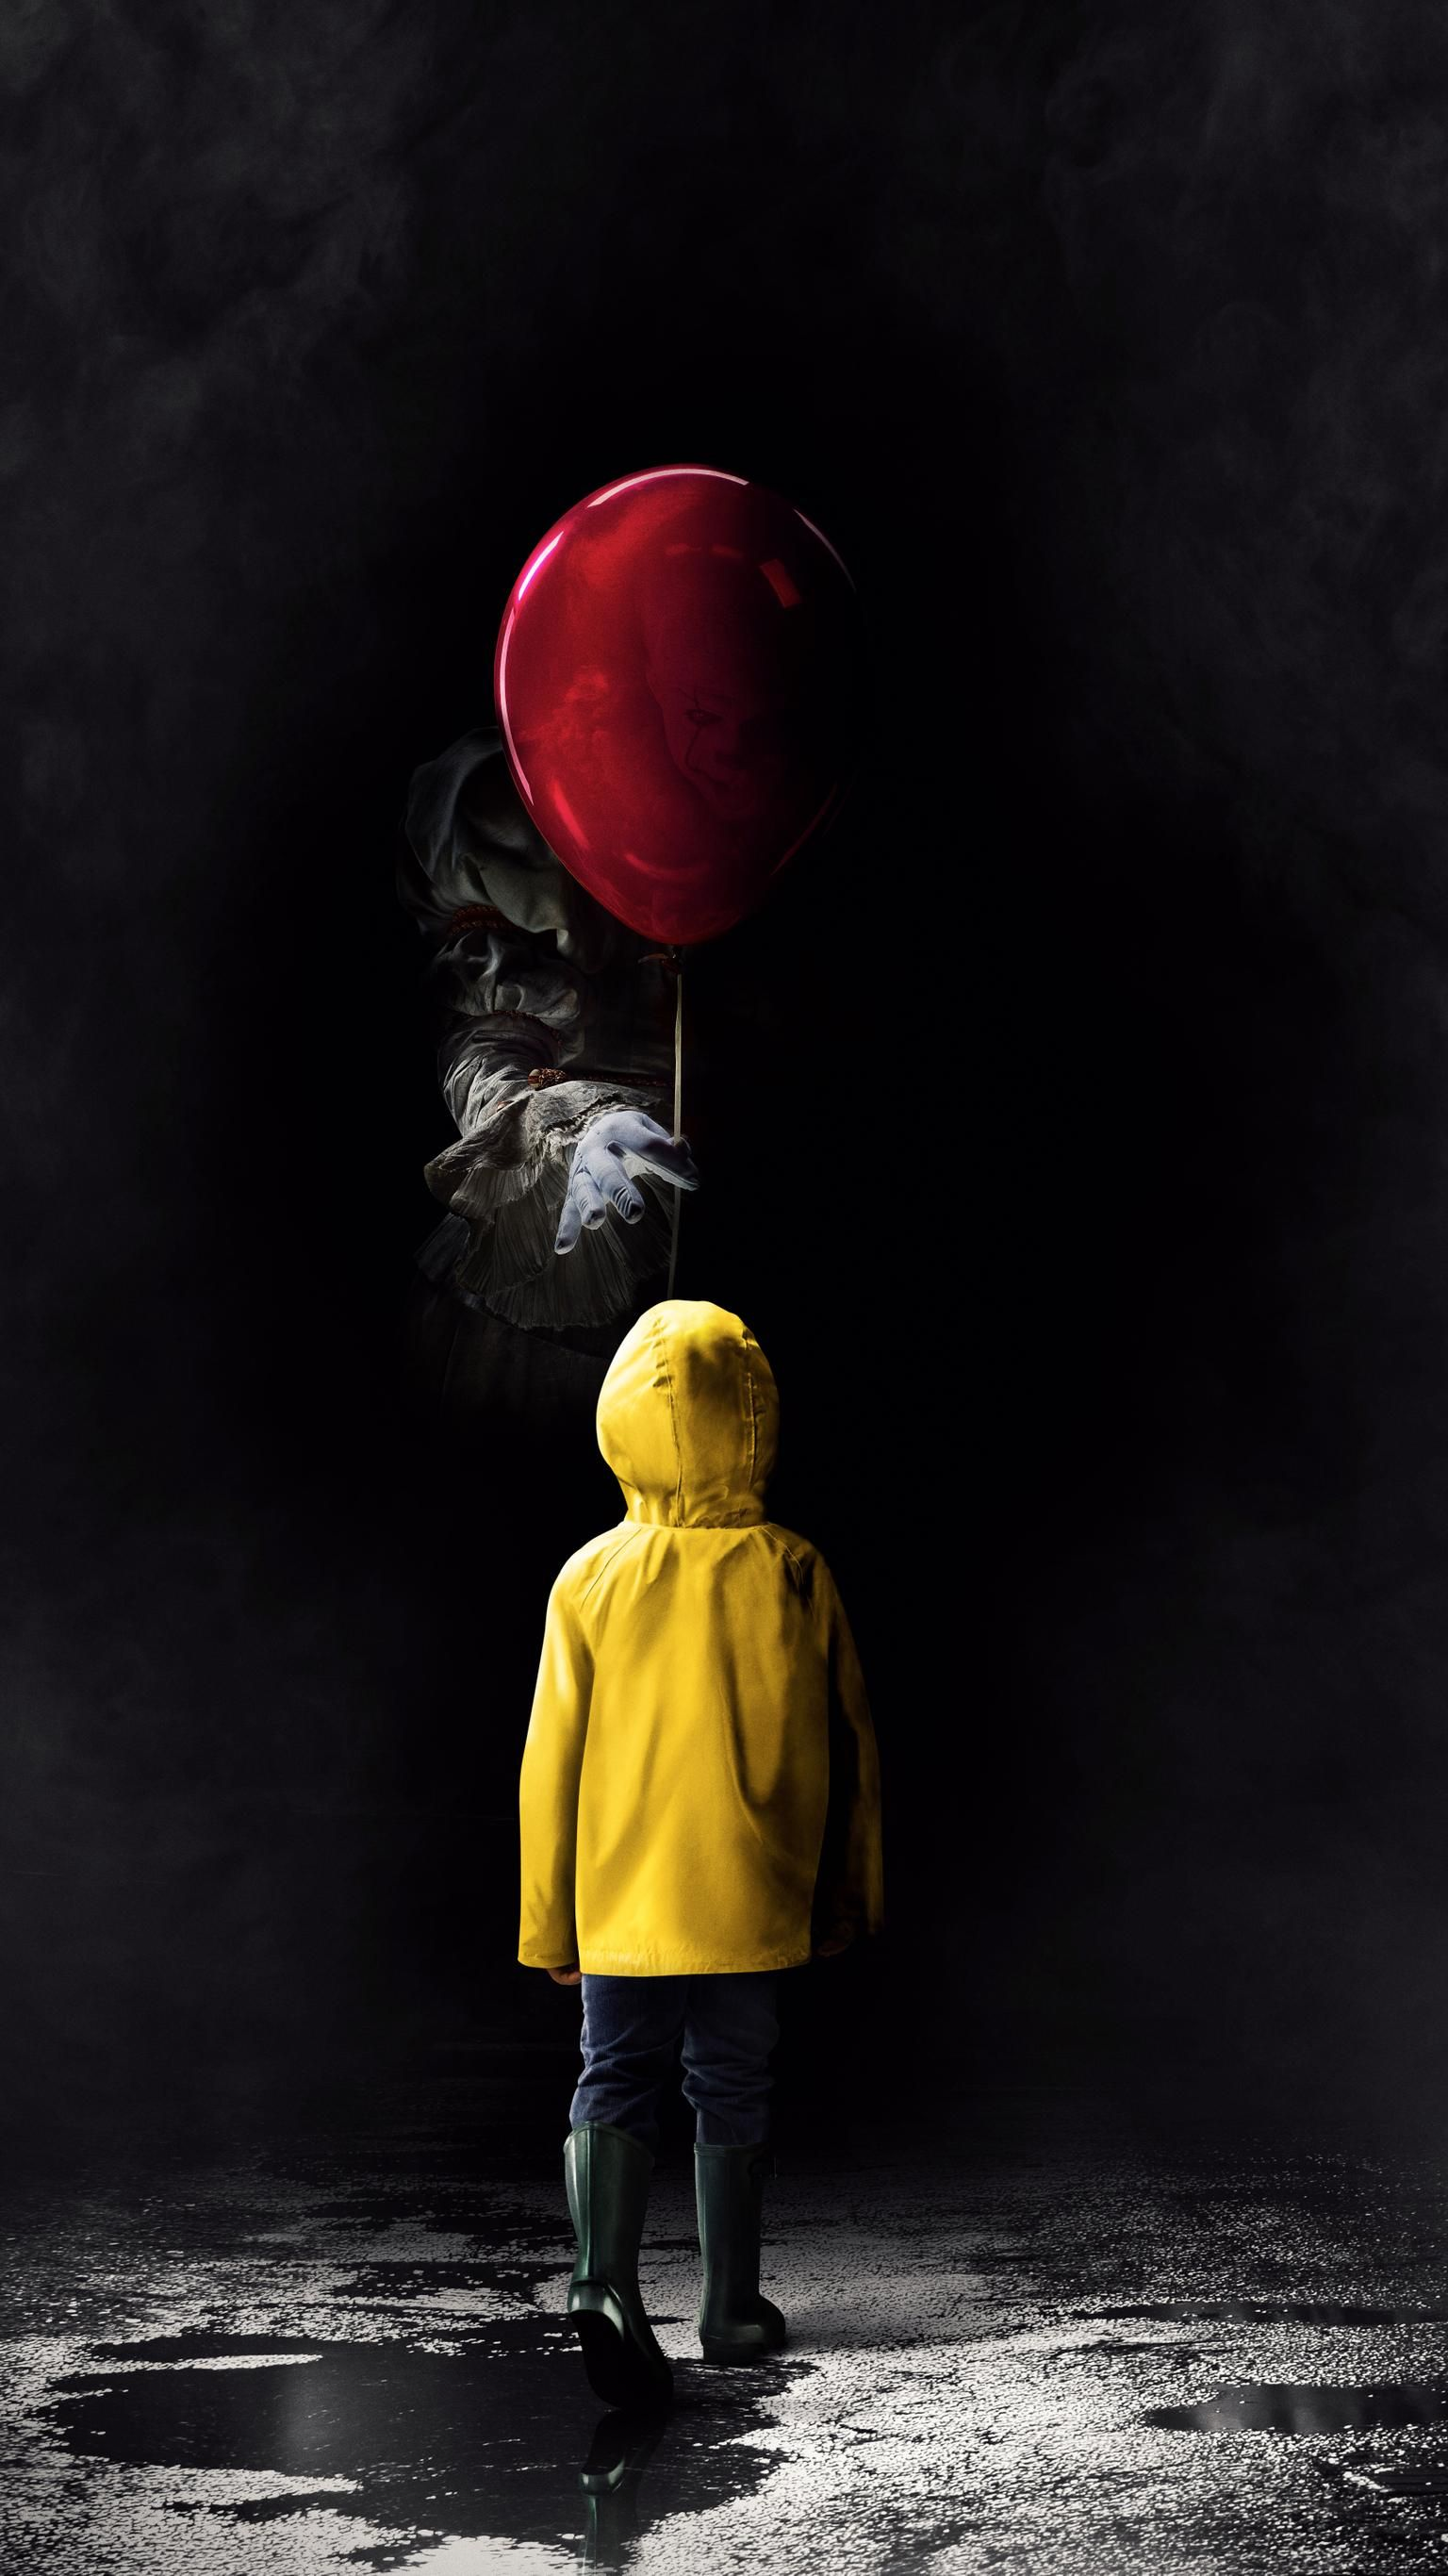 It 2017 Phone Wallpaper Moviemania Streaming Movies Free Movies Online Hd Movies